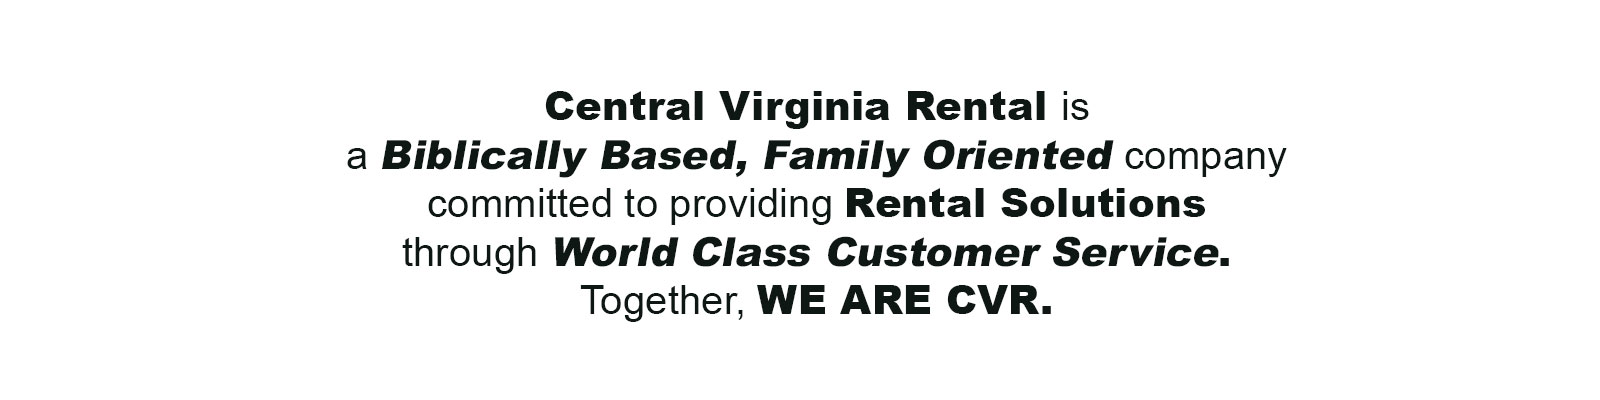 Equipment rentals in Charlottesville, Waynesboro, Harrisonburg, Staunton, and Lexington VA